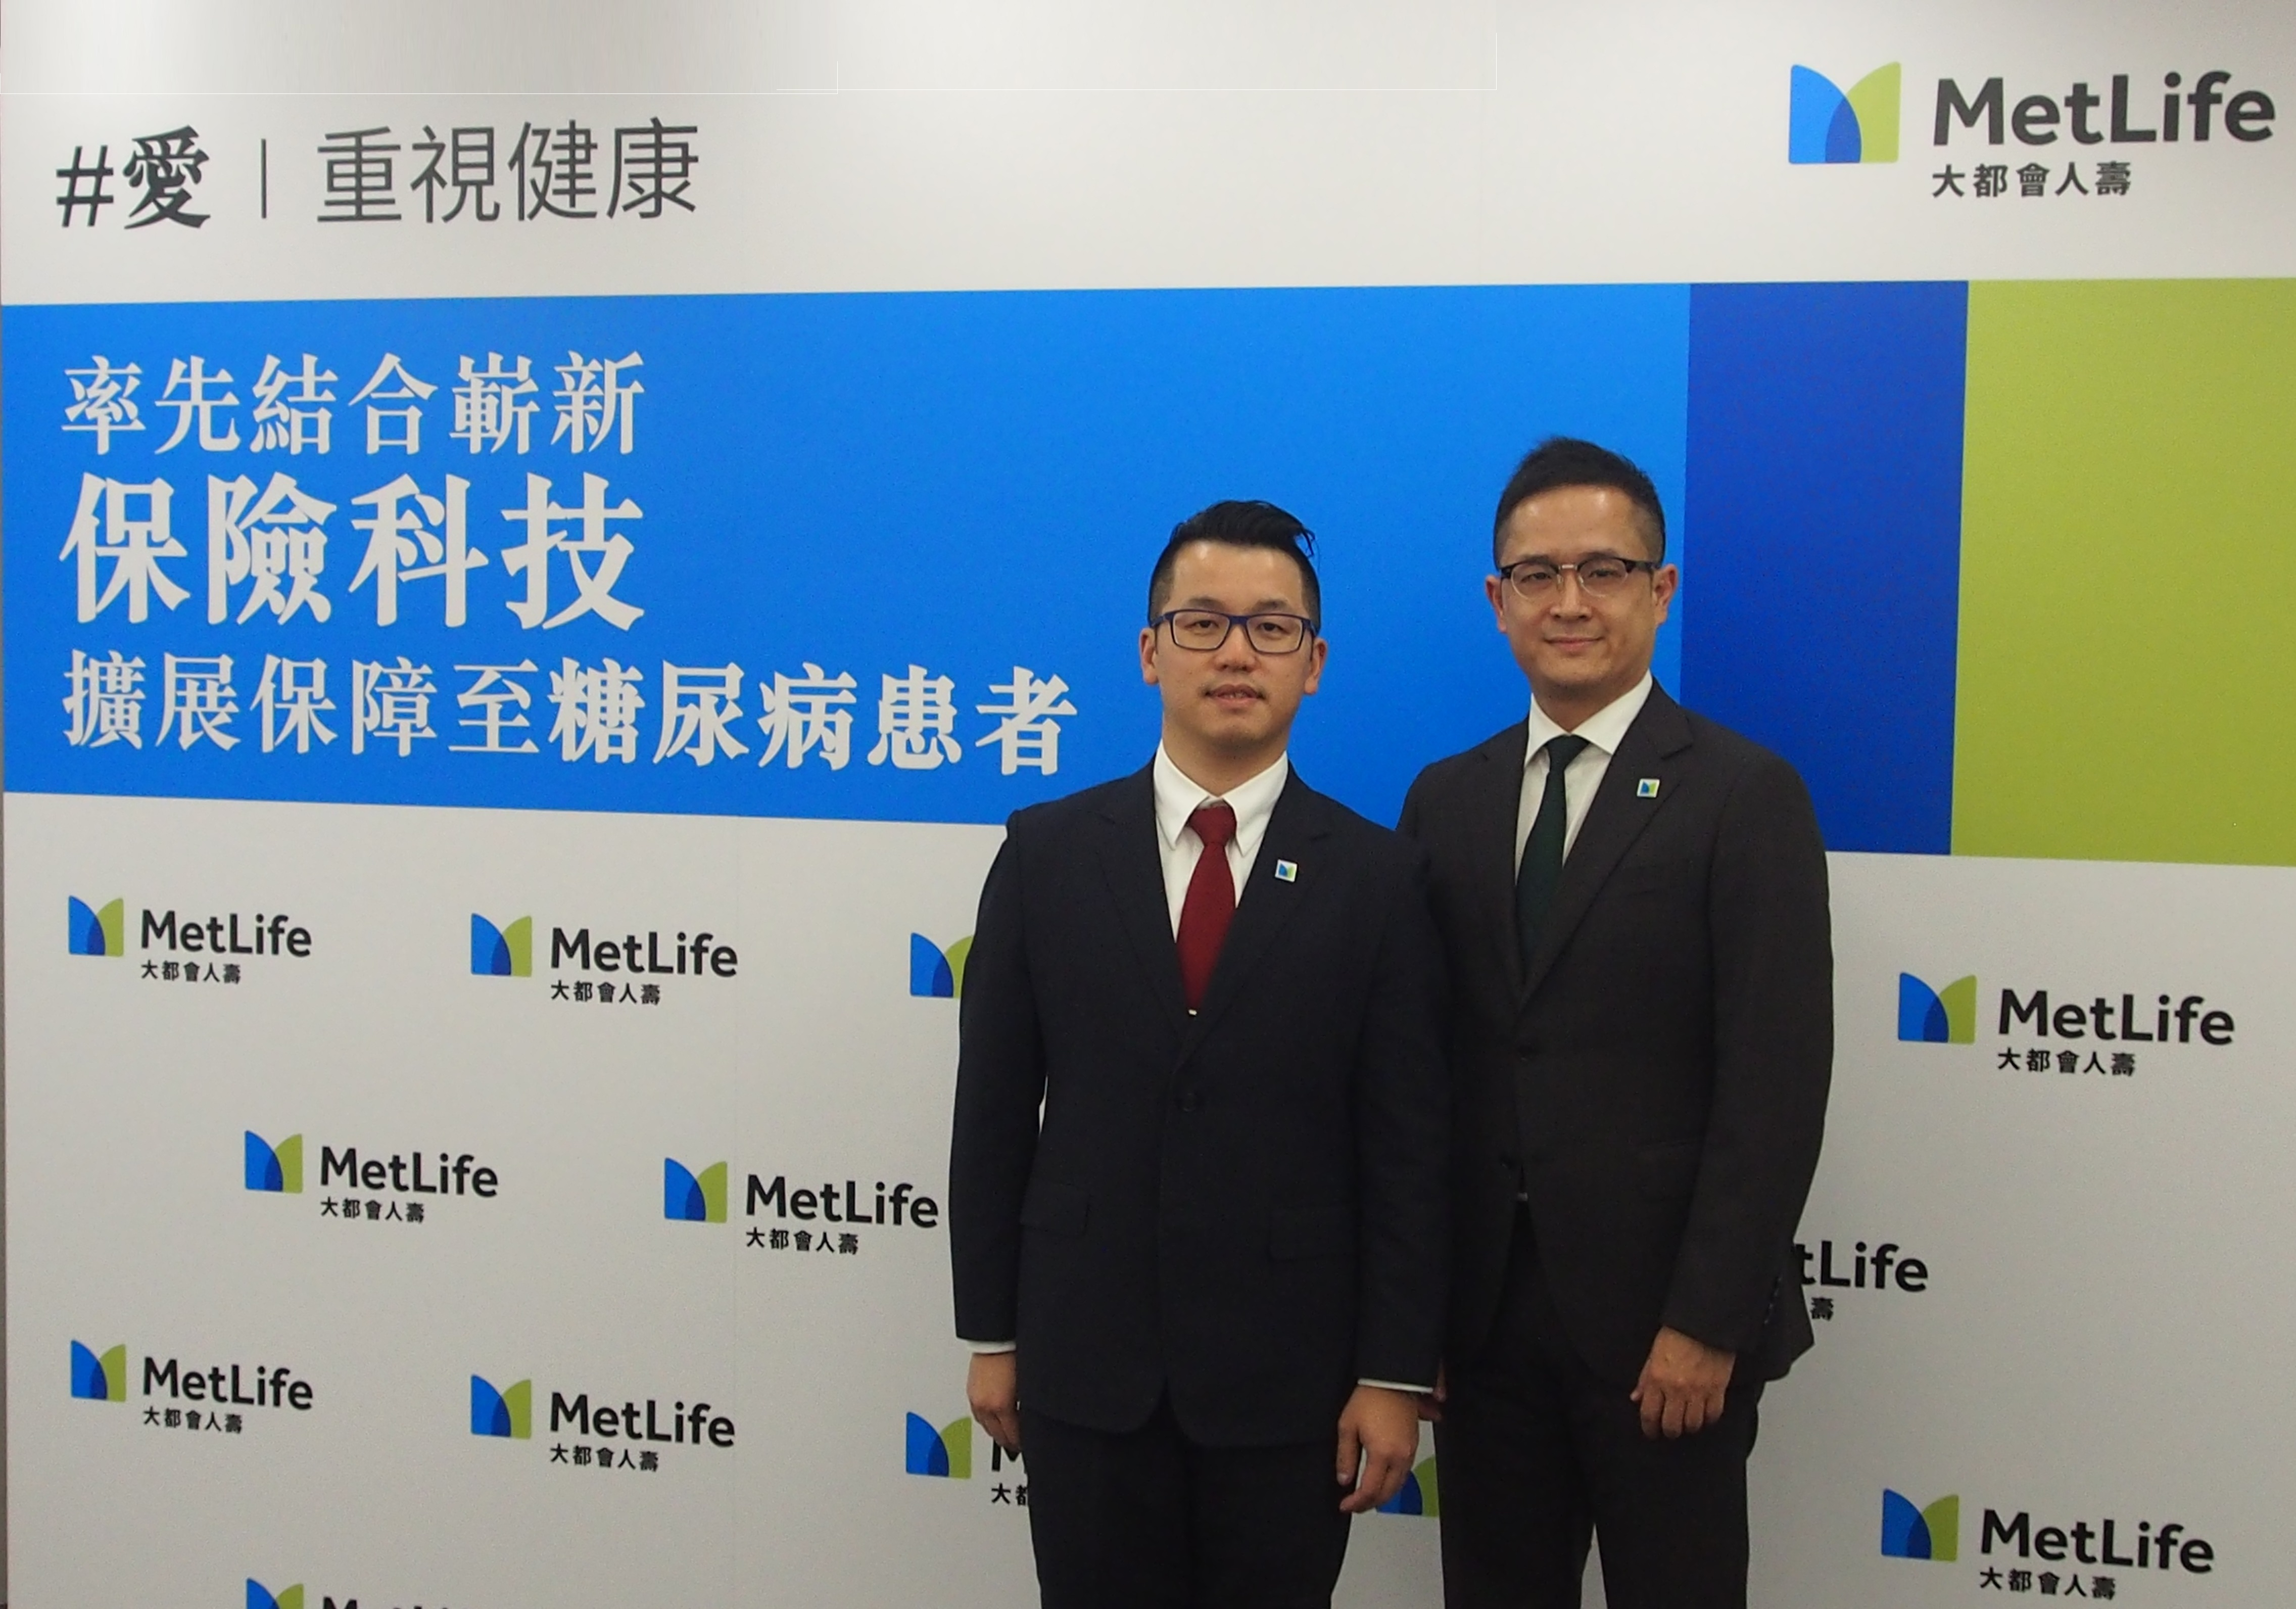 HONG KONG, CHINA - Media OutReach - September 19, 2017 -MetLife Hong Kong * announced today that it has extended the scope of its